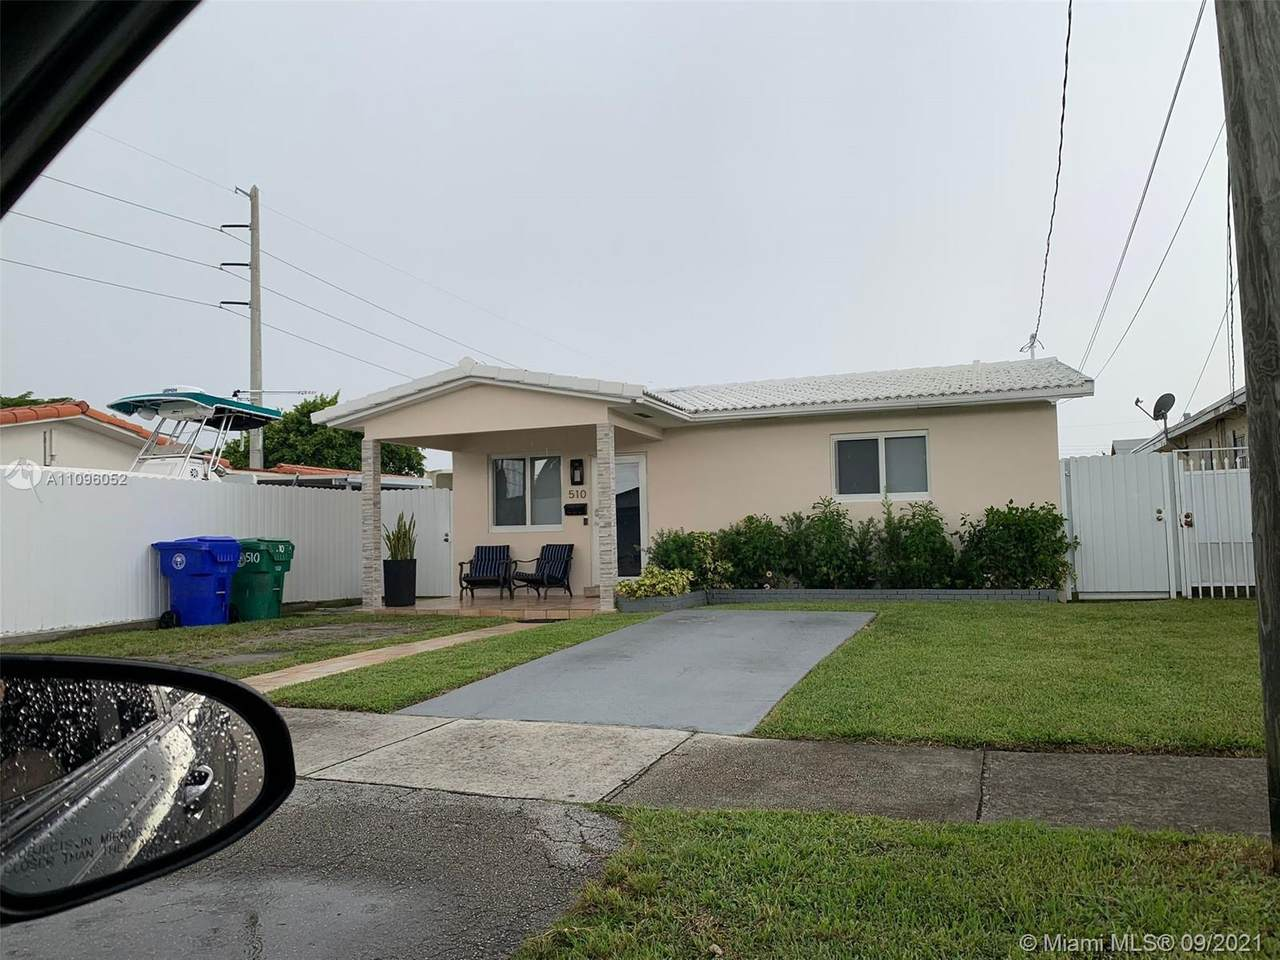 510 59th Ave - Photo 1